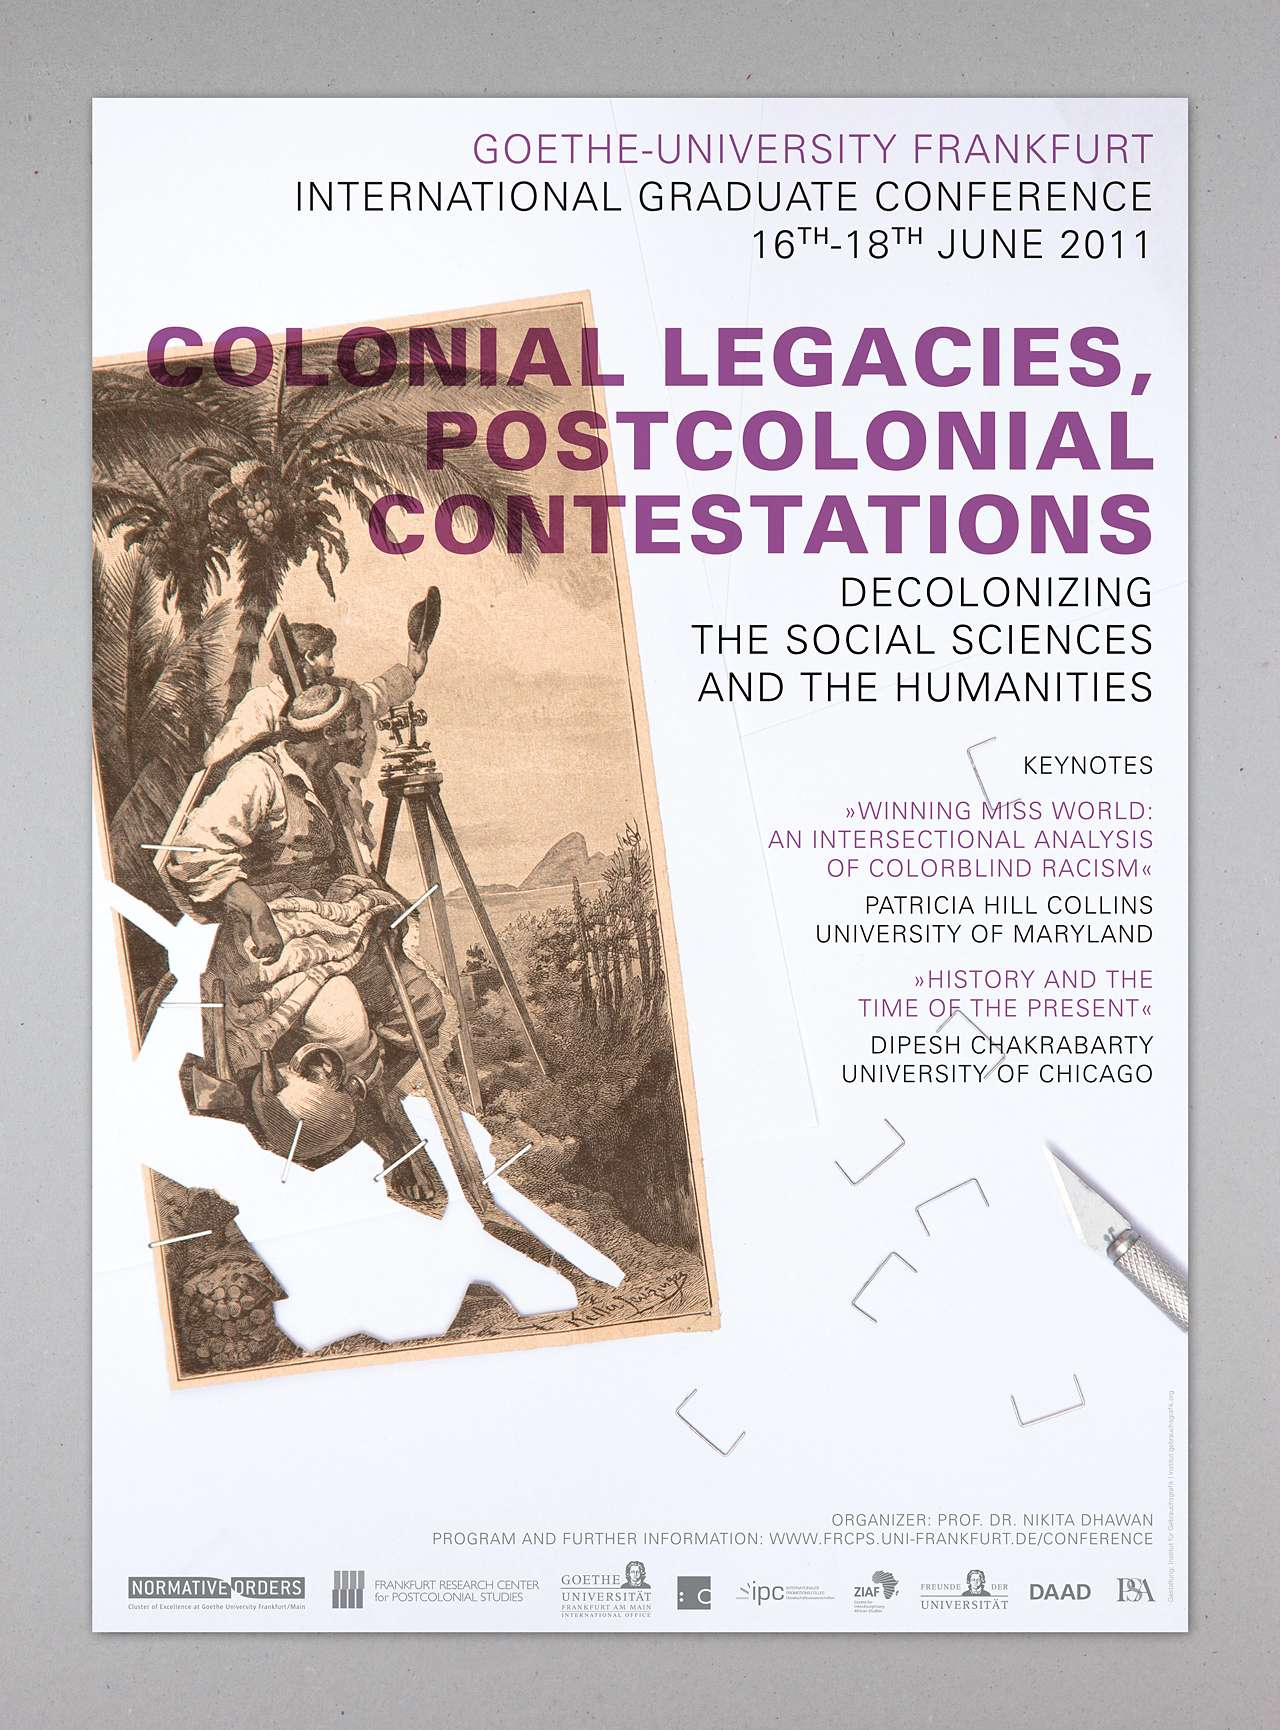 Colonial Legacies, Postcolonial Contestations